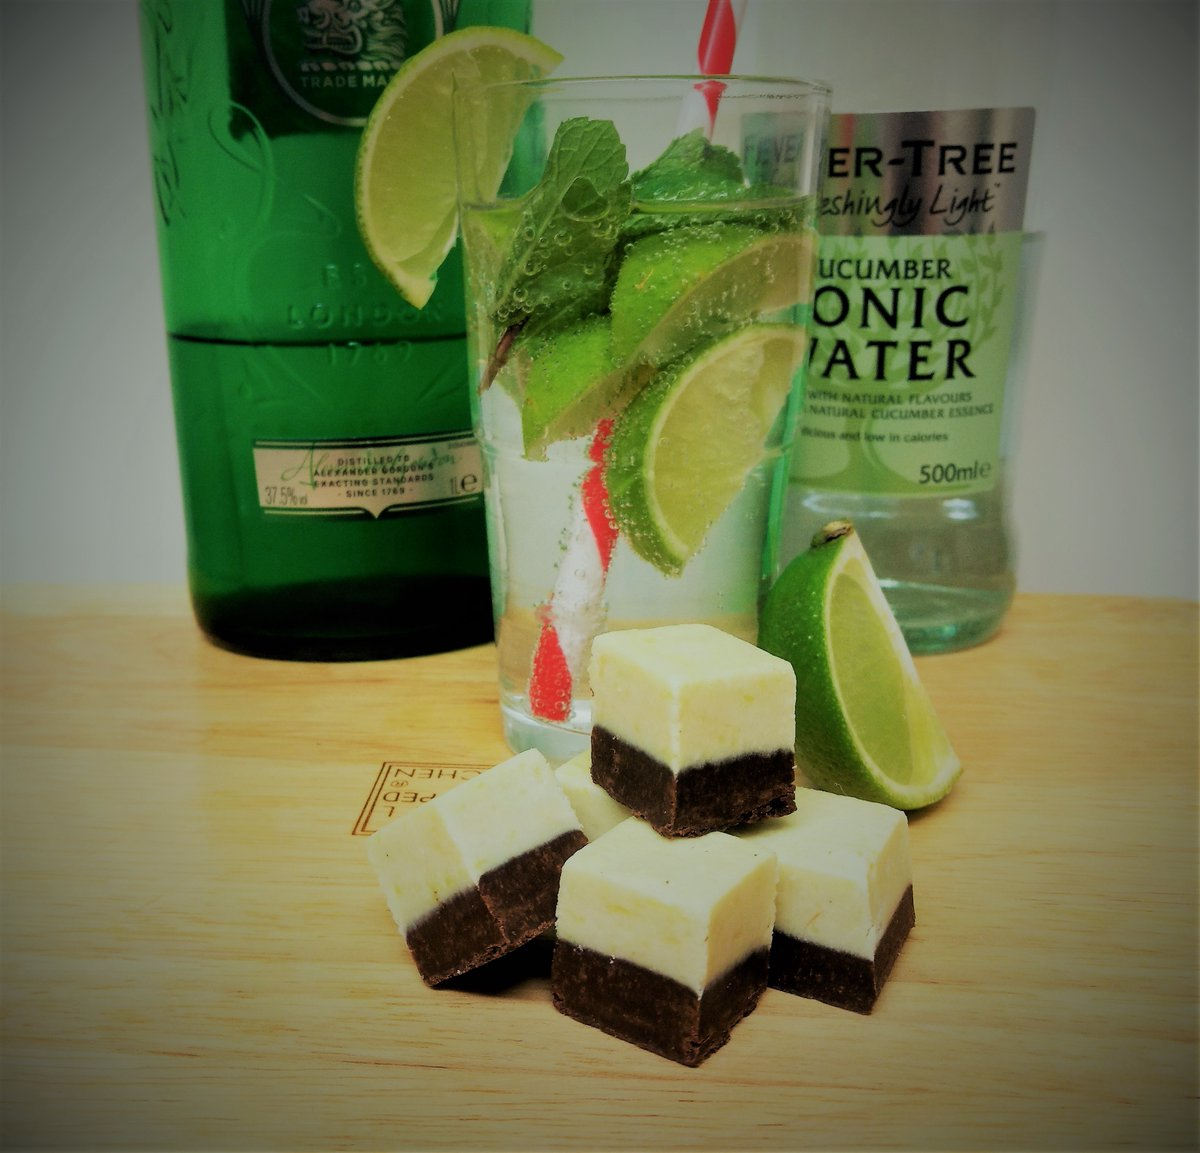 It doesn't have to be summer to enjoy our Gin and lime FabFudge, but it helps. #Vegan #TreatYourself  https://t.co/N1JxqPcFl1 #Alcohol #WineOCLock https://t.co/XfqAStczzv